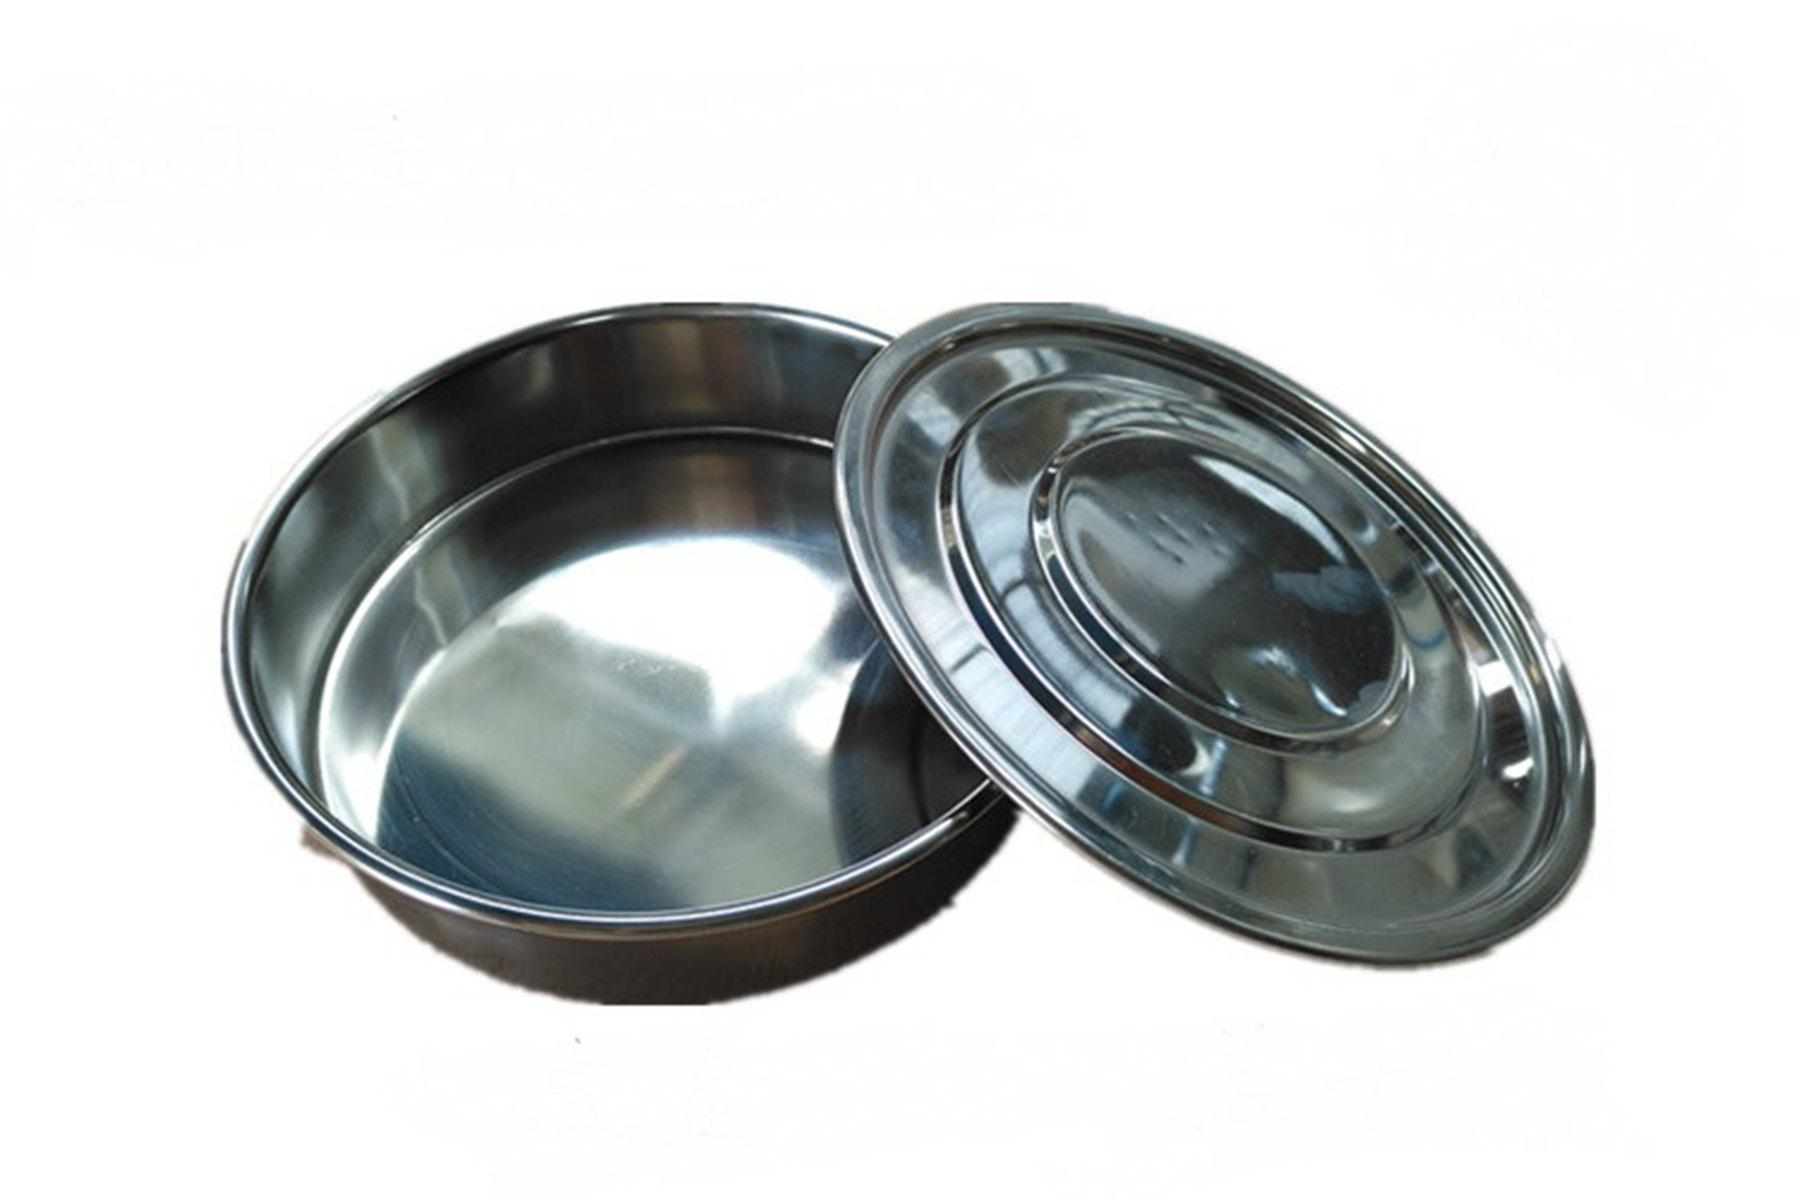 Fit Diameter 10cm Stainless Steel Lid And Bottom Test Sieve Standard Test Sieve Laboratory Sieve